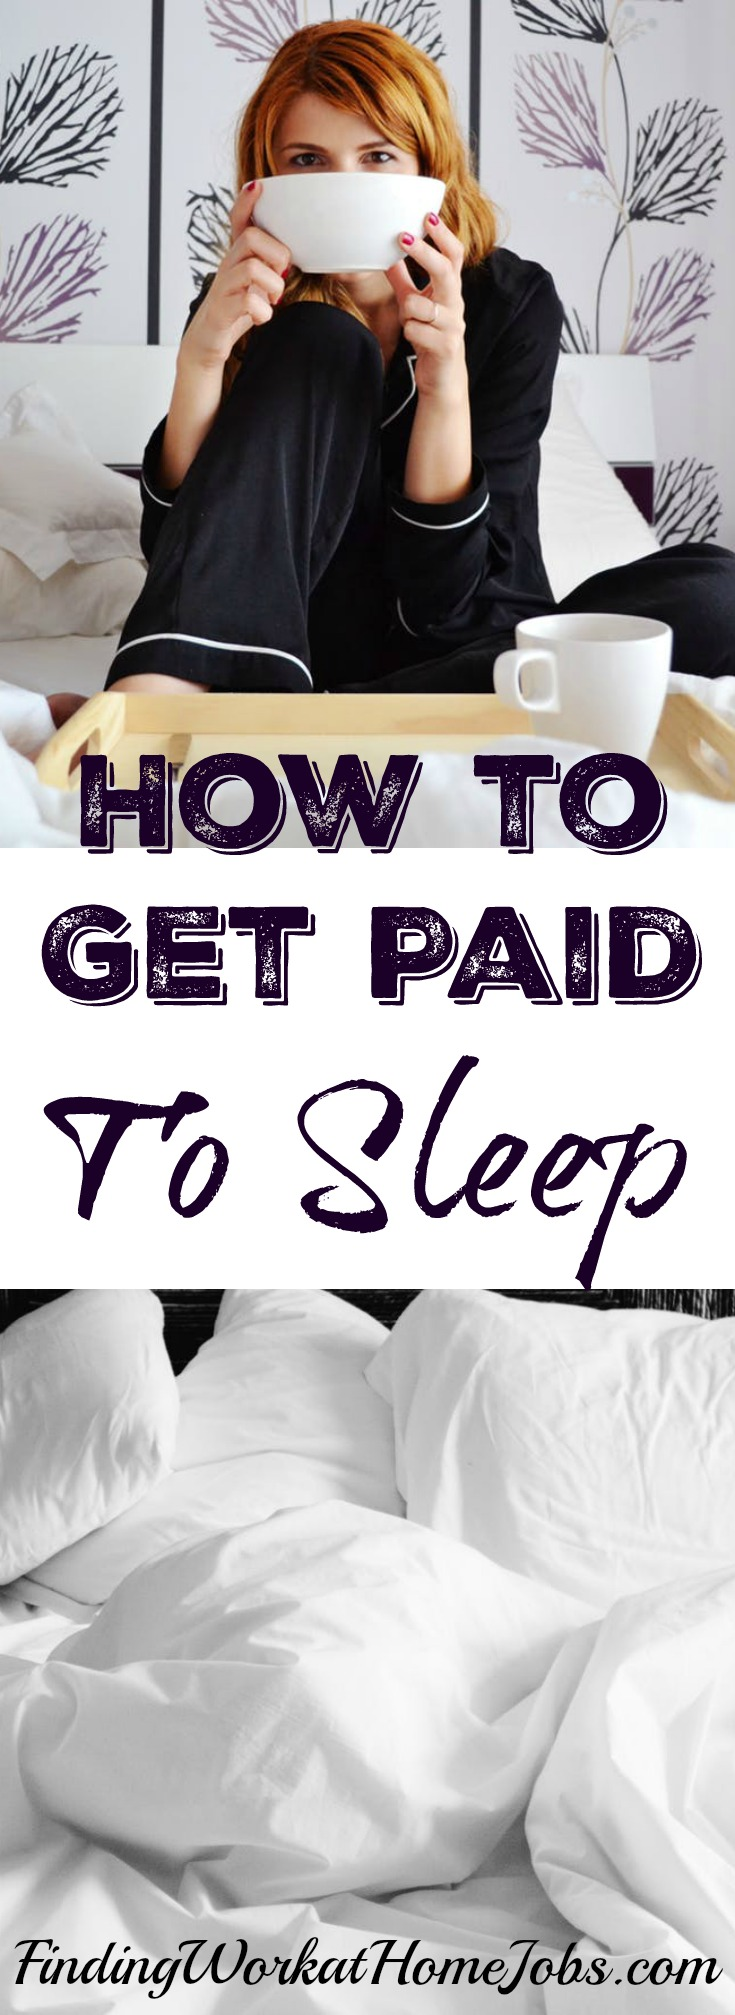 How to get paid to sleep